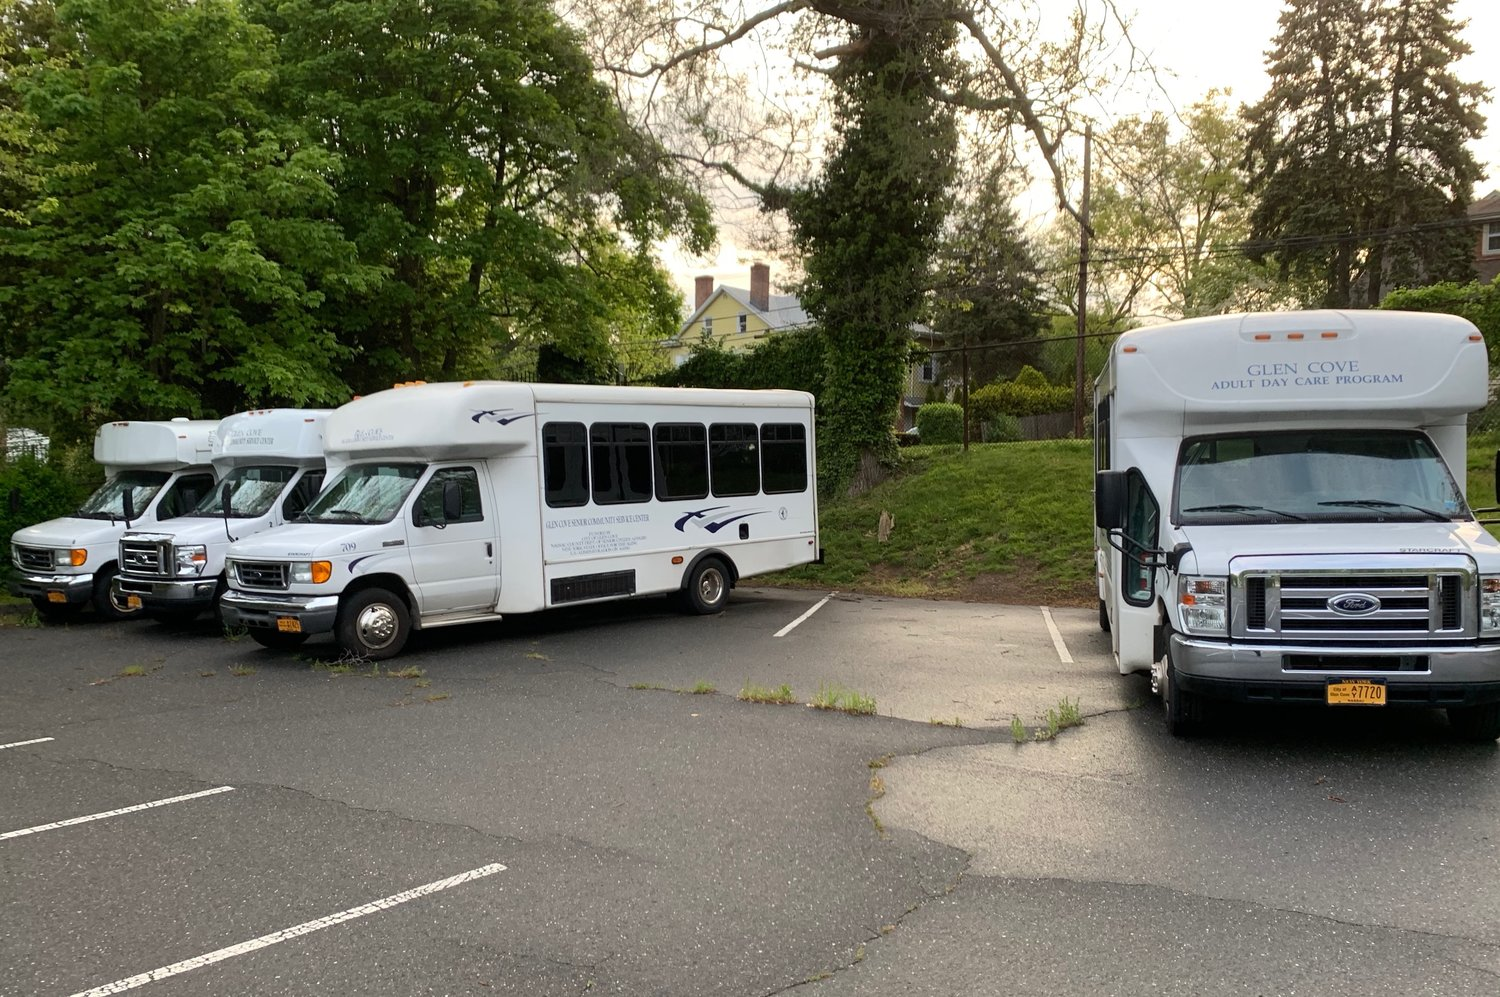 Glen Cove will receiving a new loop bus in the fall, replacing the Youth Bureau van and Glen Cove Senior Center fleet currently in use.